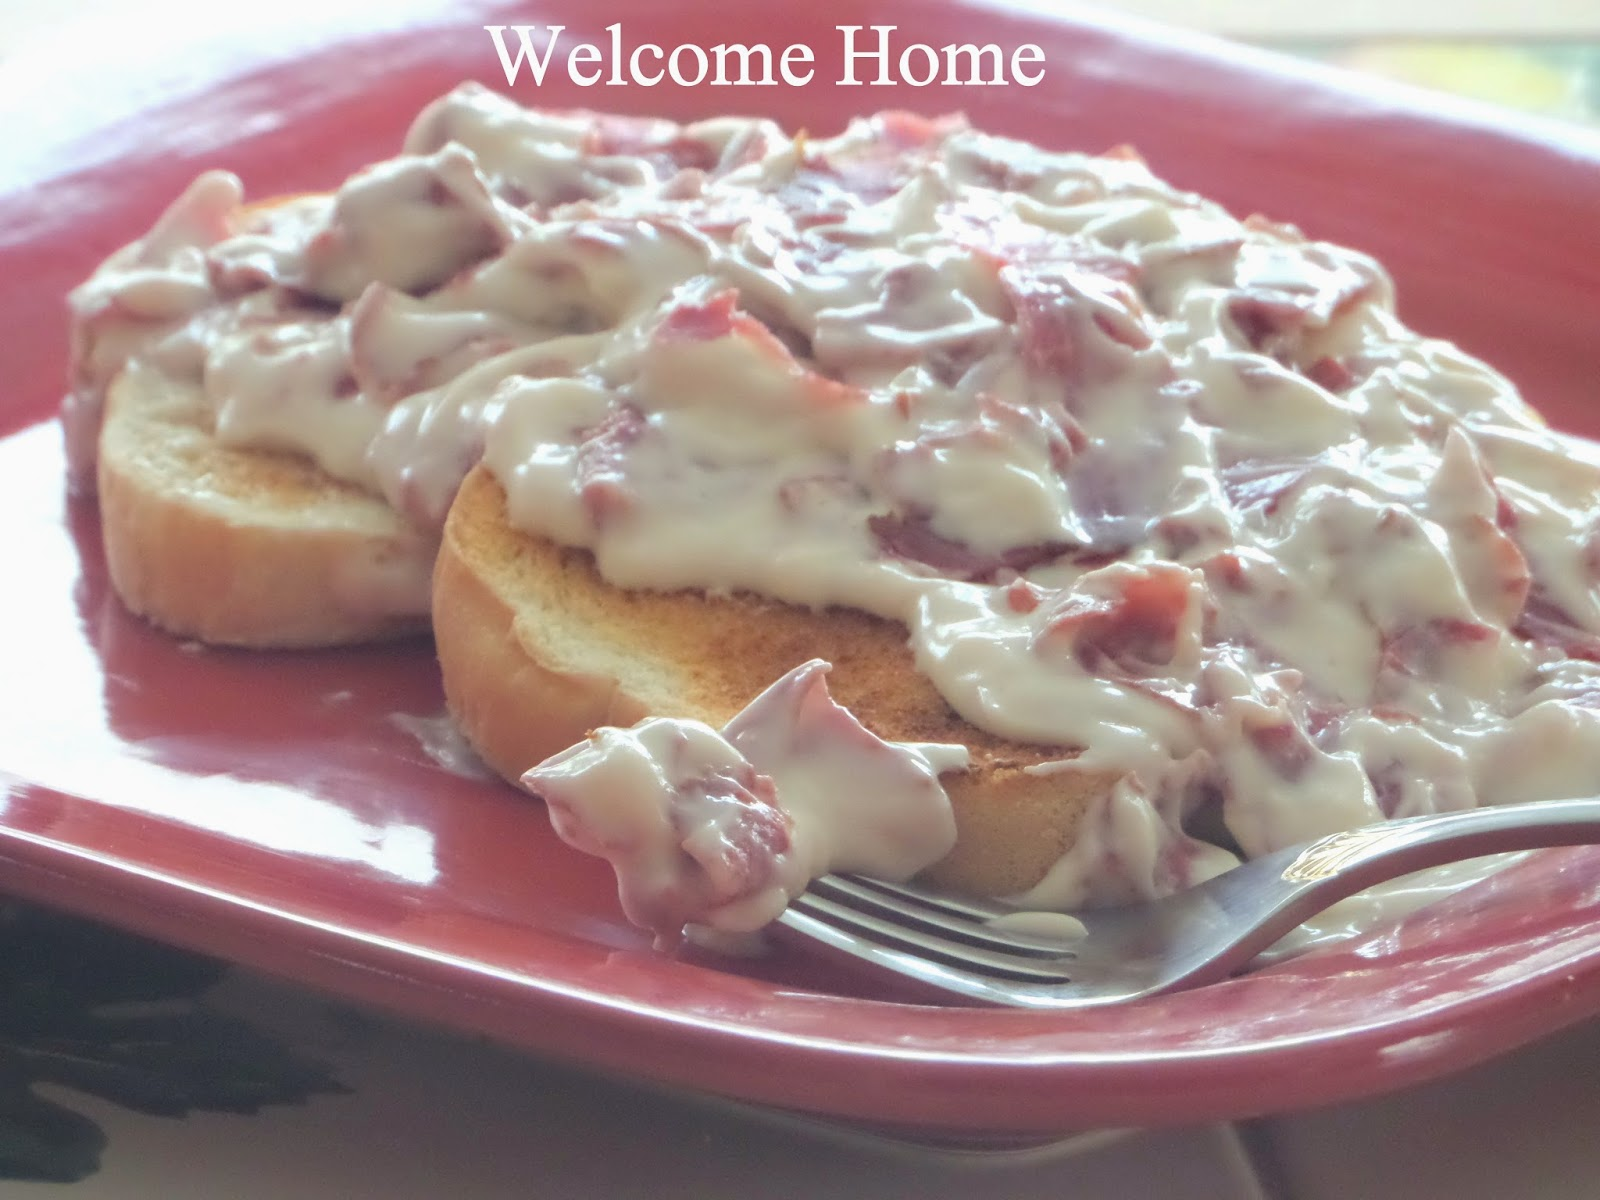 Creamed Chipped Beef Over Mashed Potatoes i Love Creamed Chipped Beef